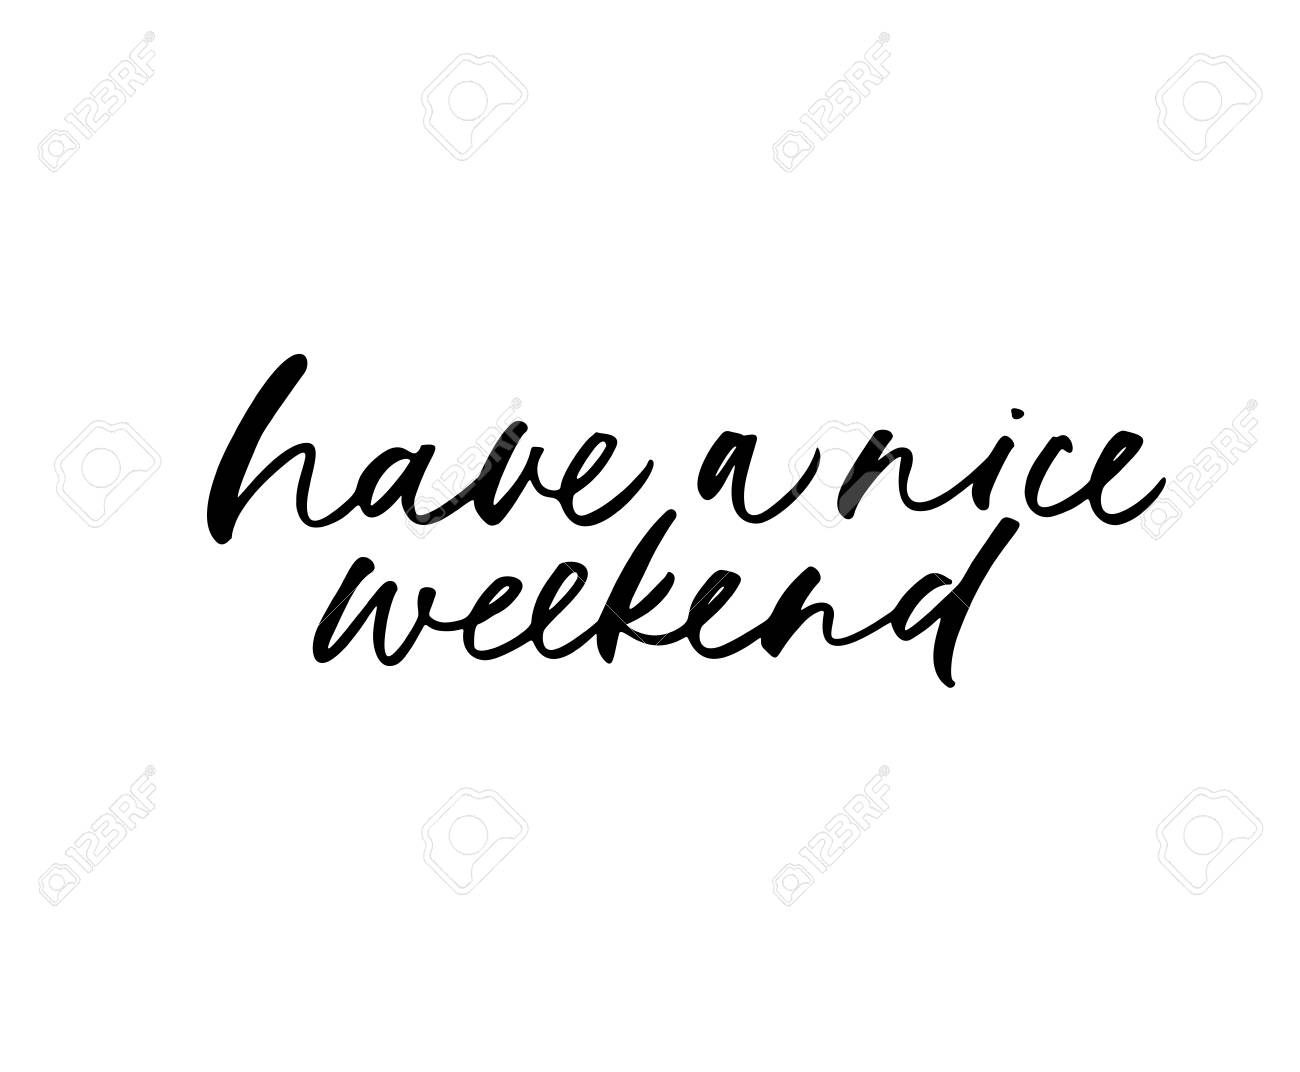 Have a nice weekend phrase. Hand drawn brush style modern calligraphy. Vector illustration of handwritten lettering. - 119617860